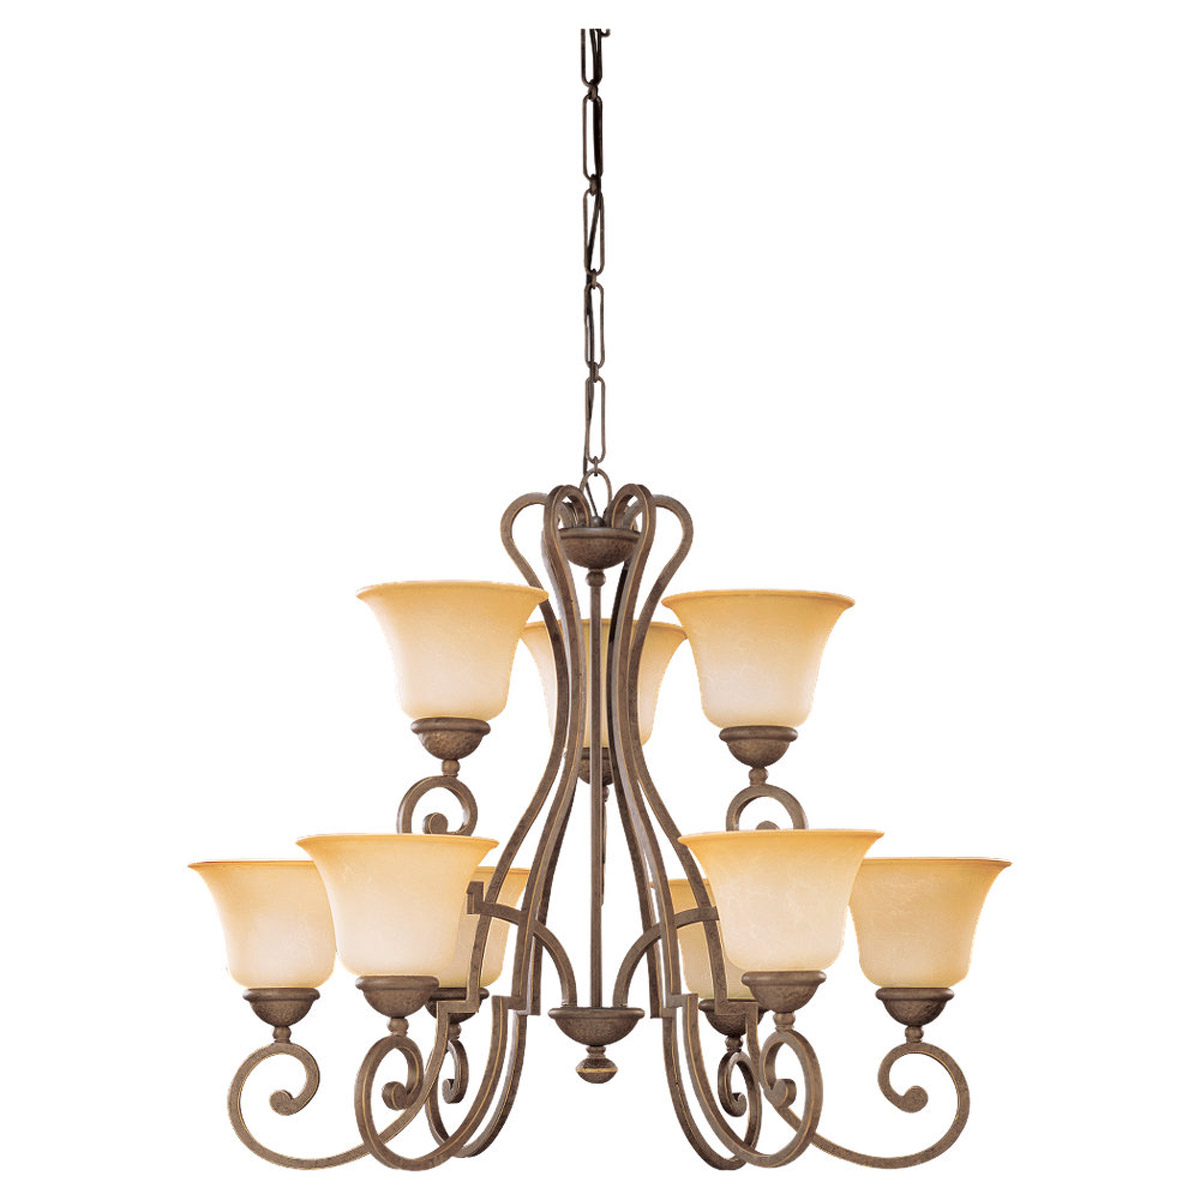 Sea Gull Lighting Brandywine 9 Light Chandelier in Antique Bronze 31432-71 photo